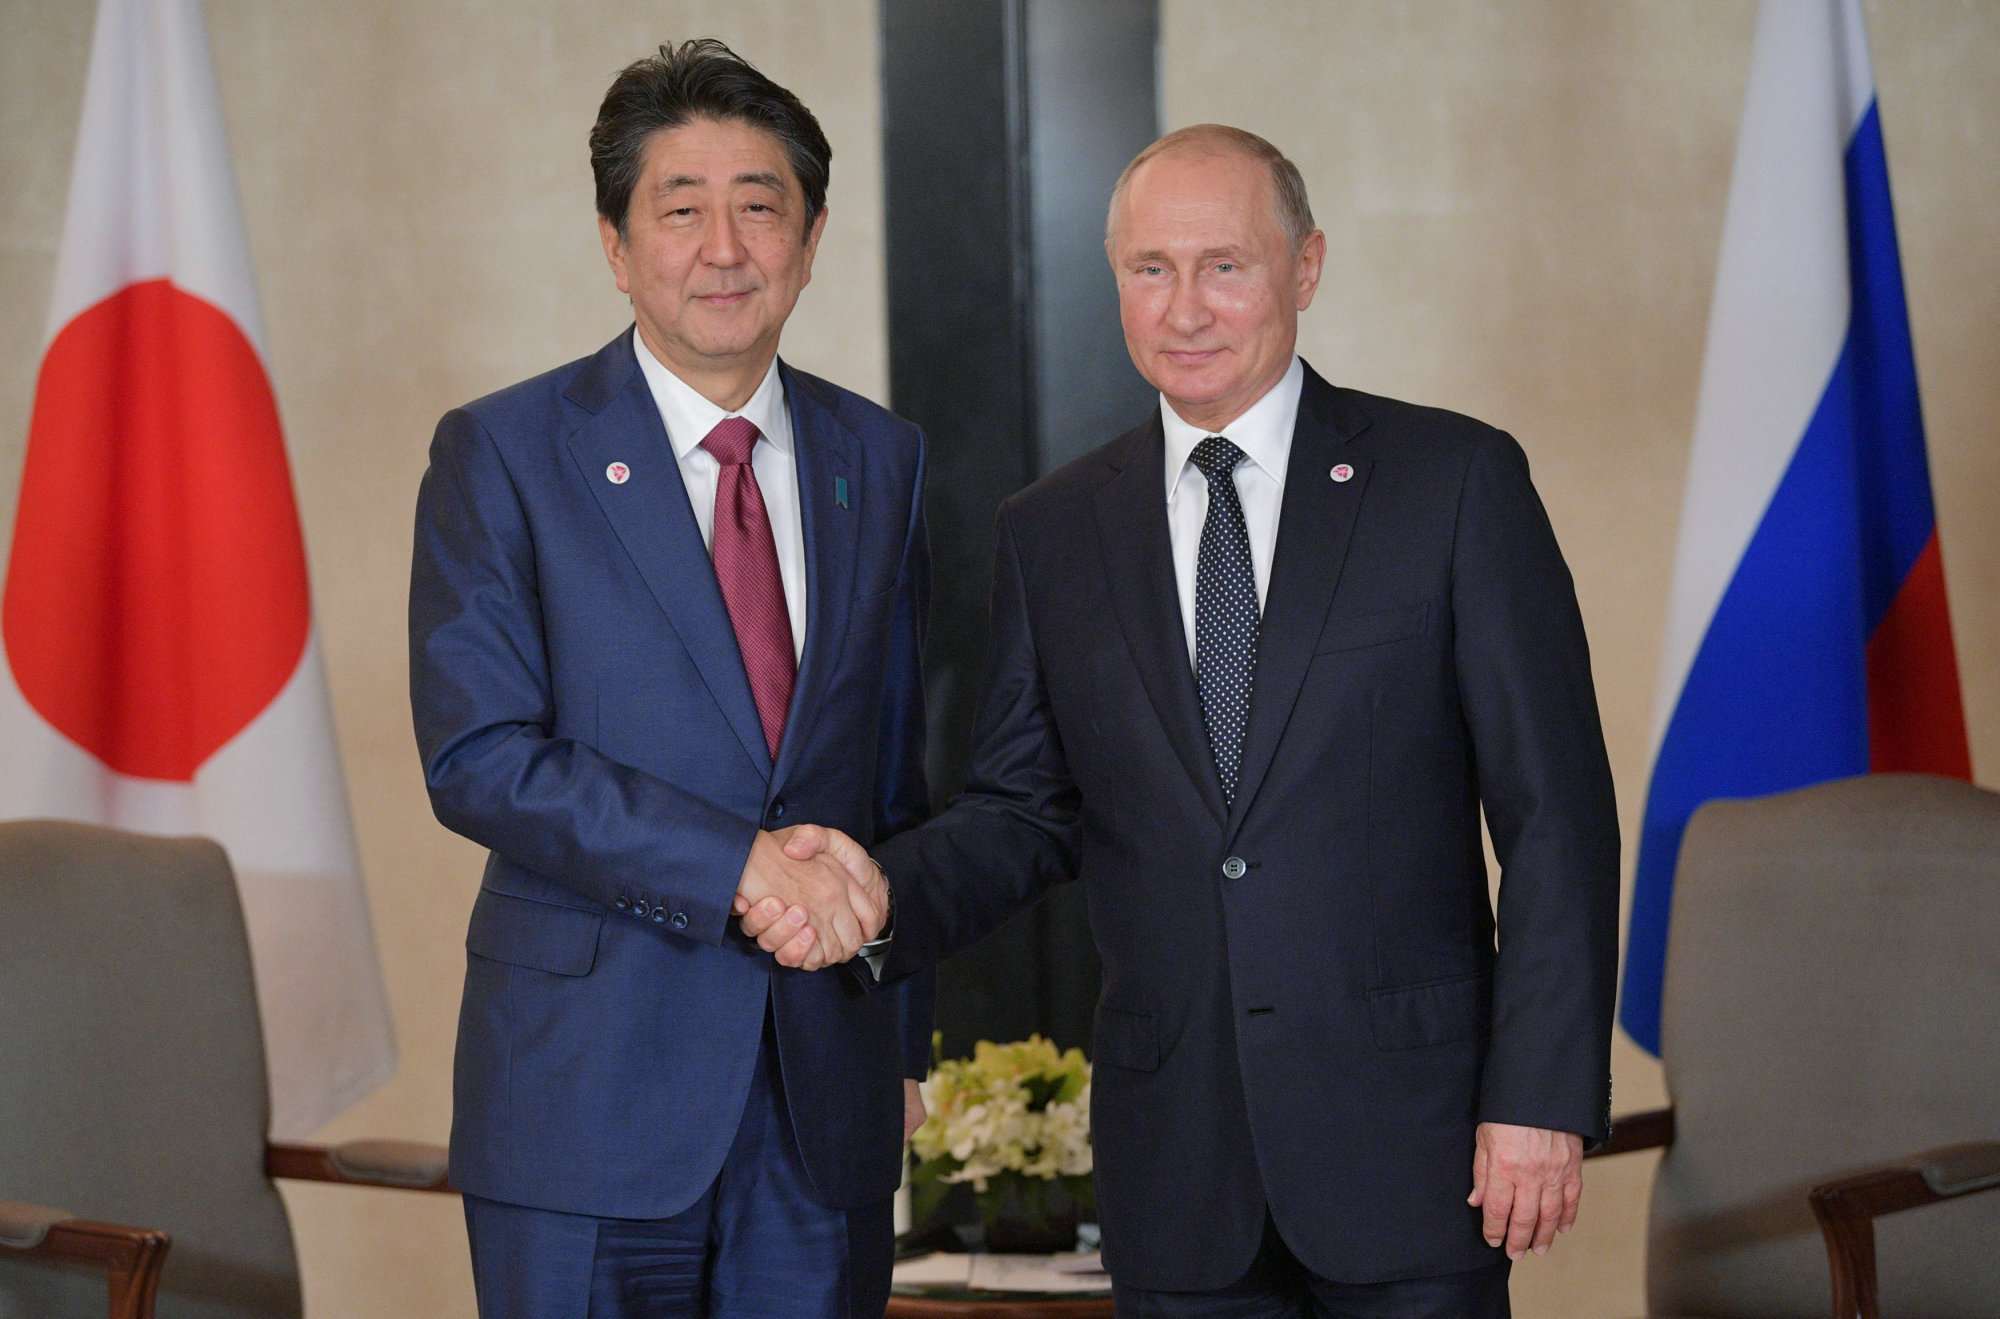 Japanese Prime Minister Shinzo Abe (left) and Russian President Vladimir Putin attend a meeting on the sidelines of the ASEAN-Russia Summit in Singapore Wednesday. | SPUTNIK / ALEXEI DRUZHININ / KREMLIN / VIA REUTERS